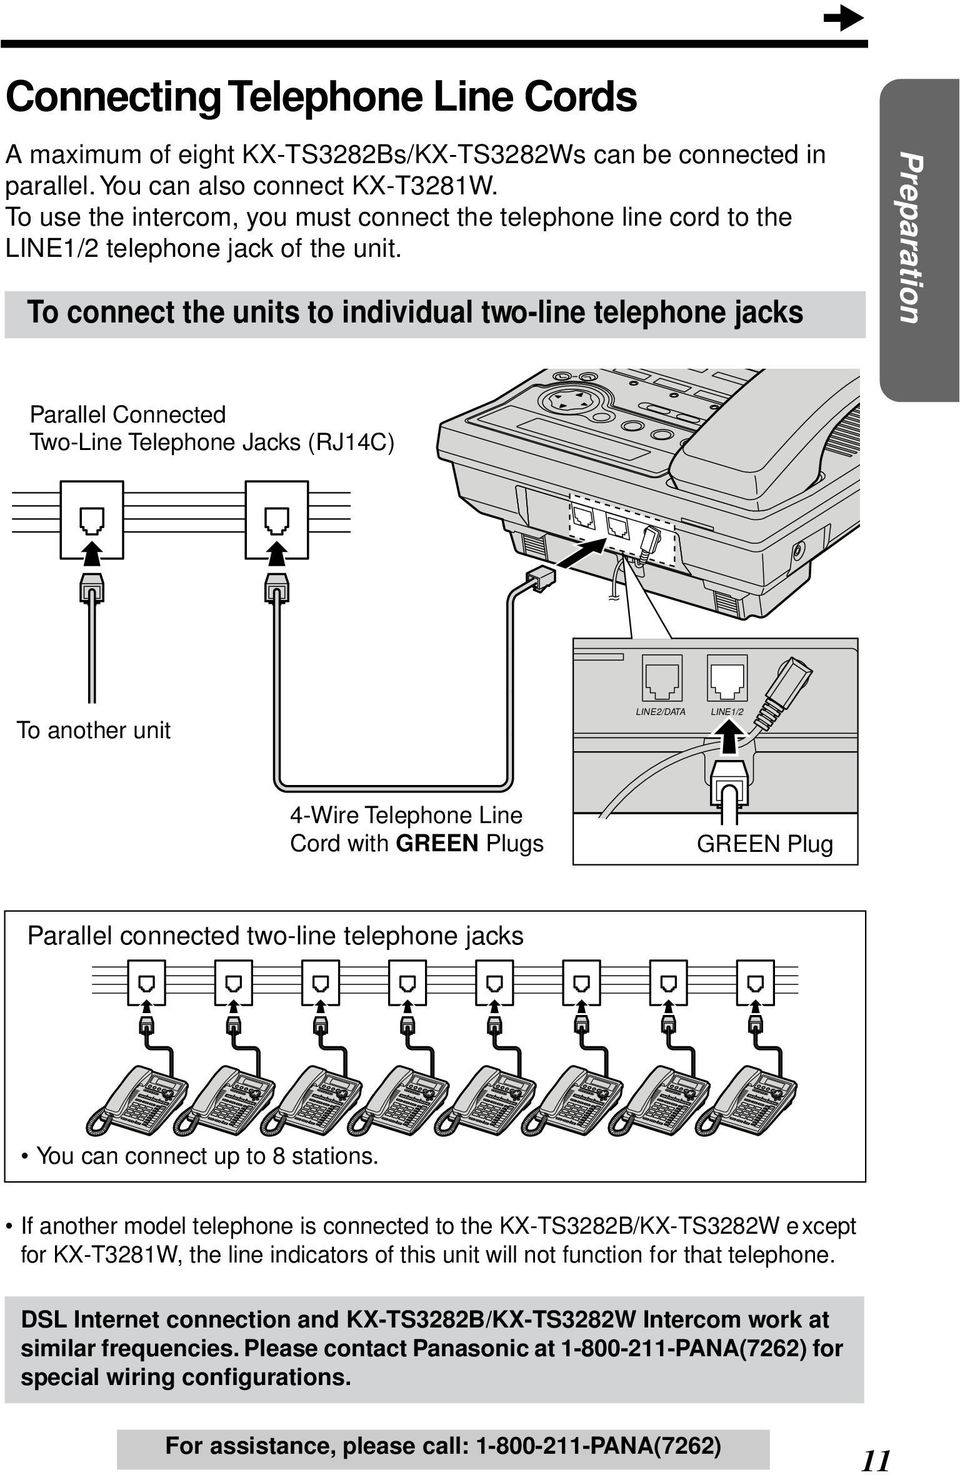 To connect the units to individual two-line telephone jacks Preparation Parallel Connected Two-Line Telephone Jacks (RJ4C) To another unit LINE/DATA LINE/ 4-Wire Telephone Line Cord with GREEN Plugs